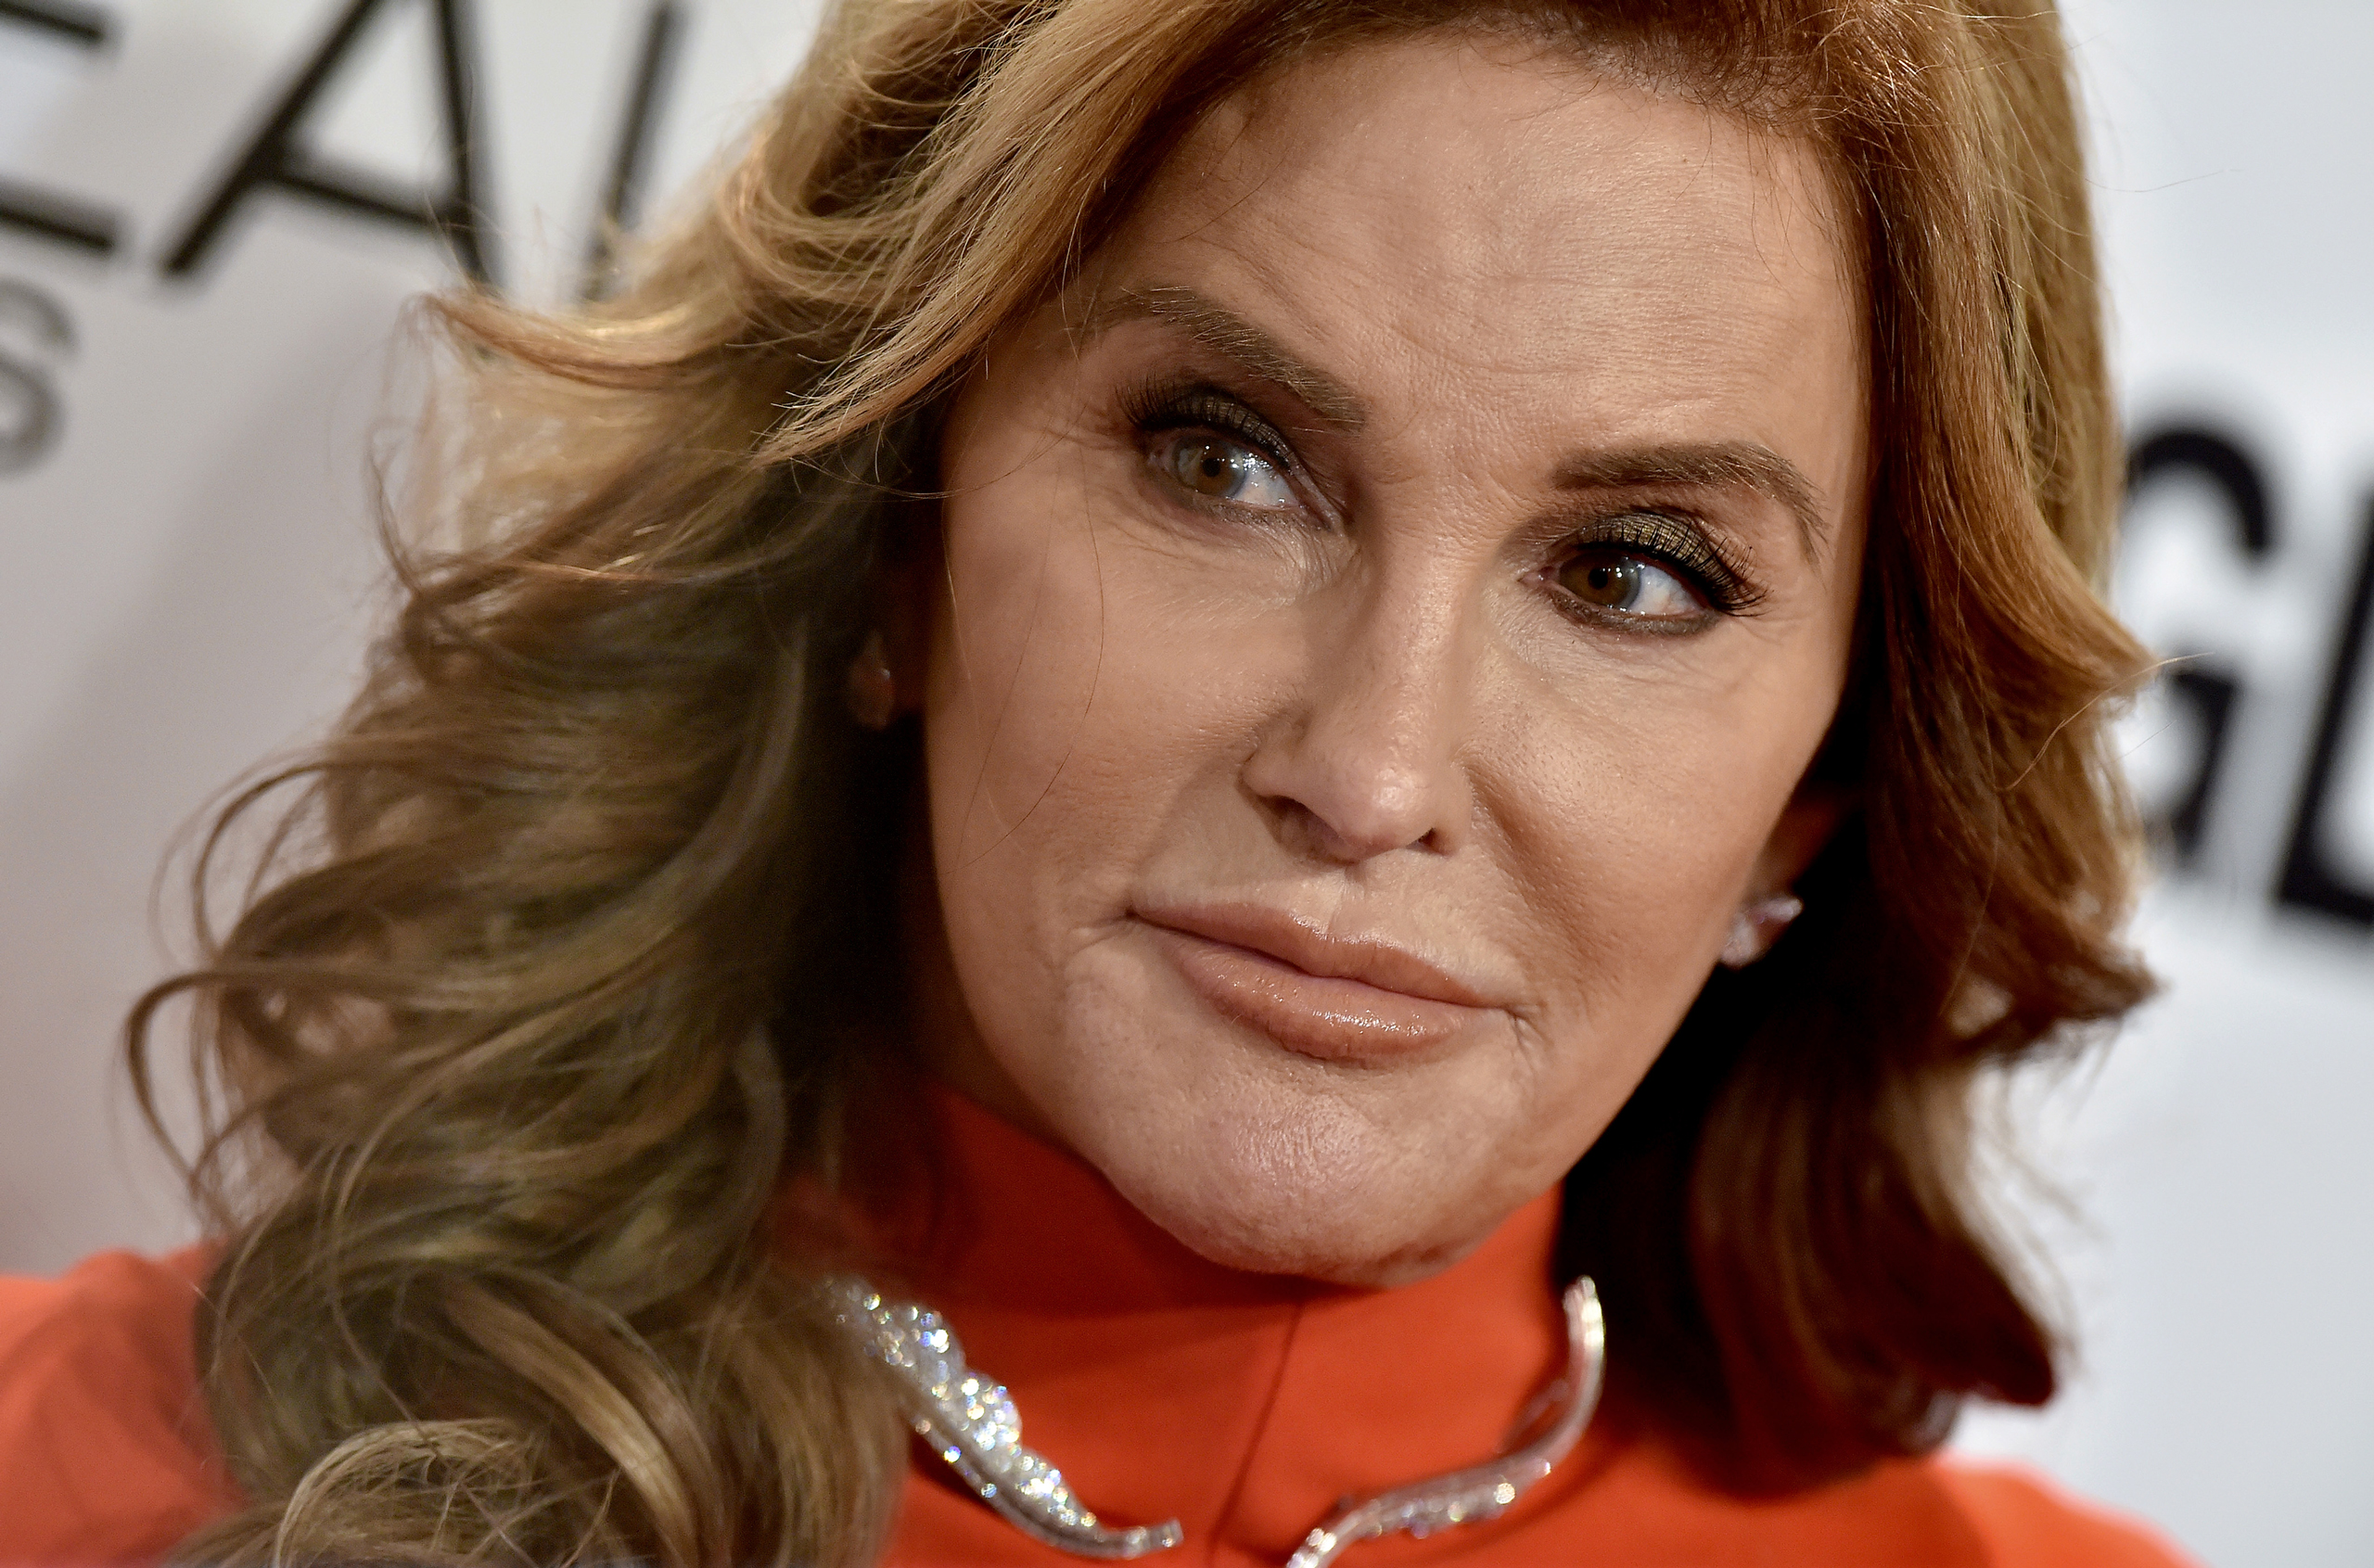 Caitlyn Jenner arrives at Glamour Women of the Year 2016 at NeueHouse Hollywood in Los Angeles on Nov. 14, 2016.